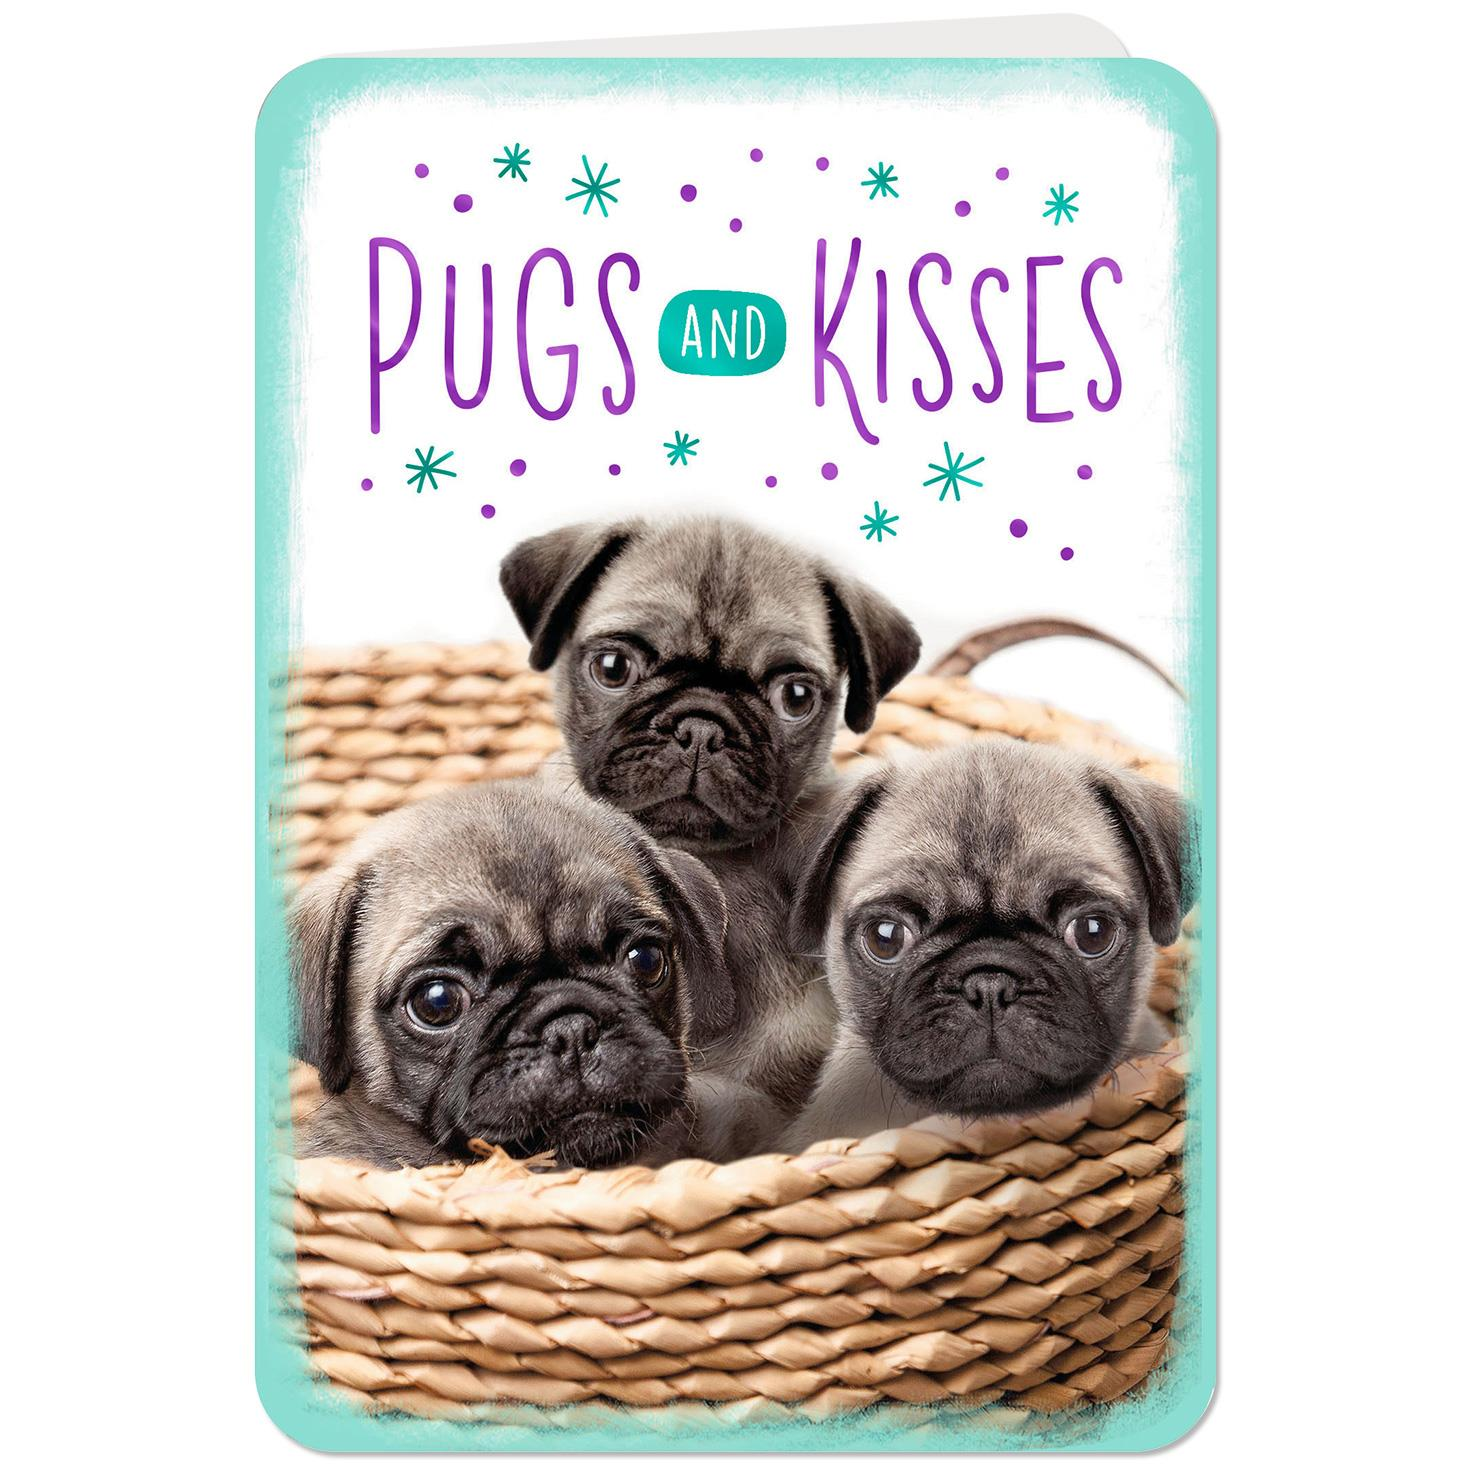 Pugs And Kisses Love Card Greeting Cards Hallmark